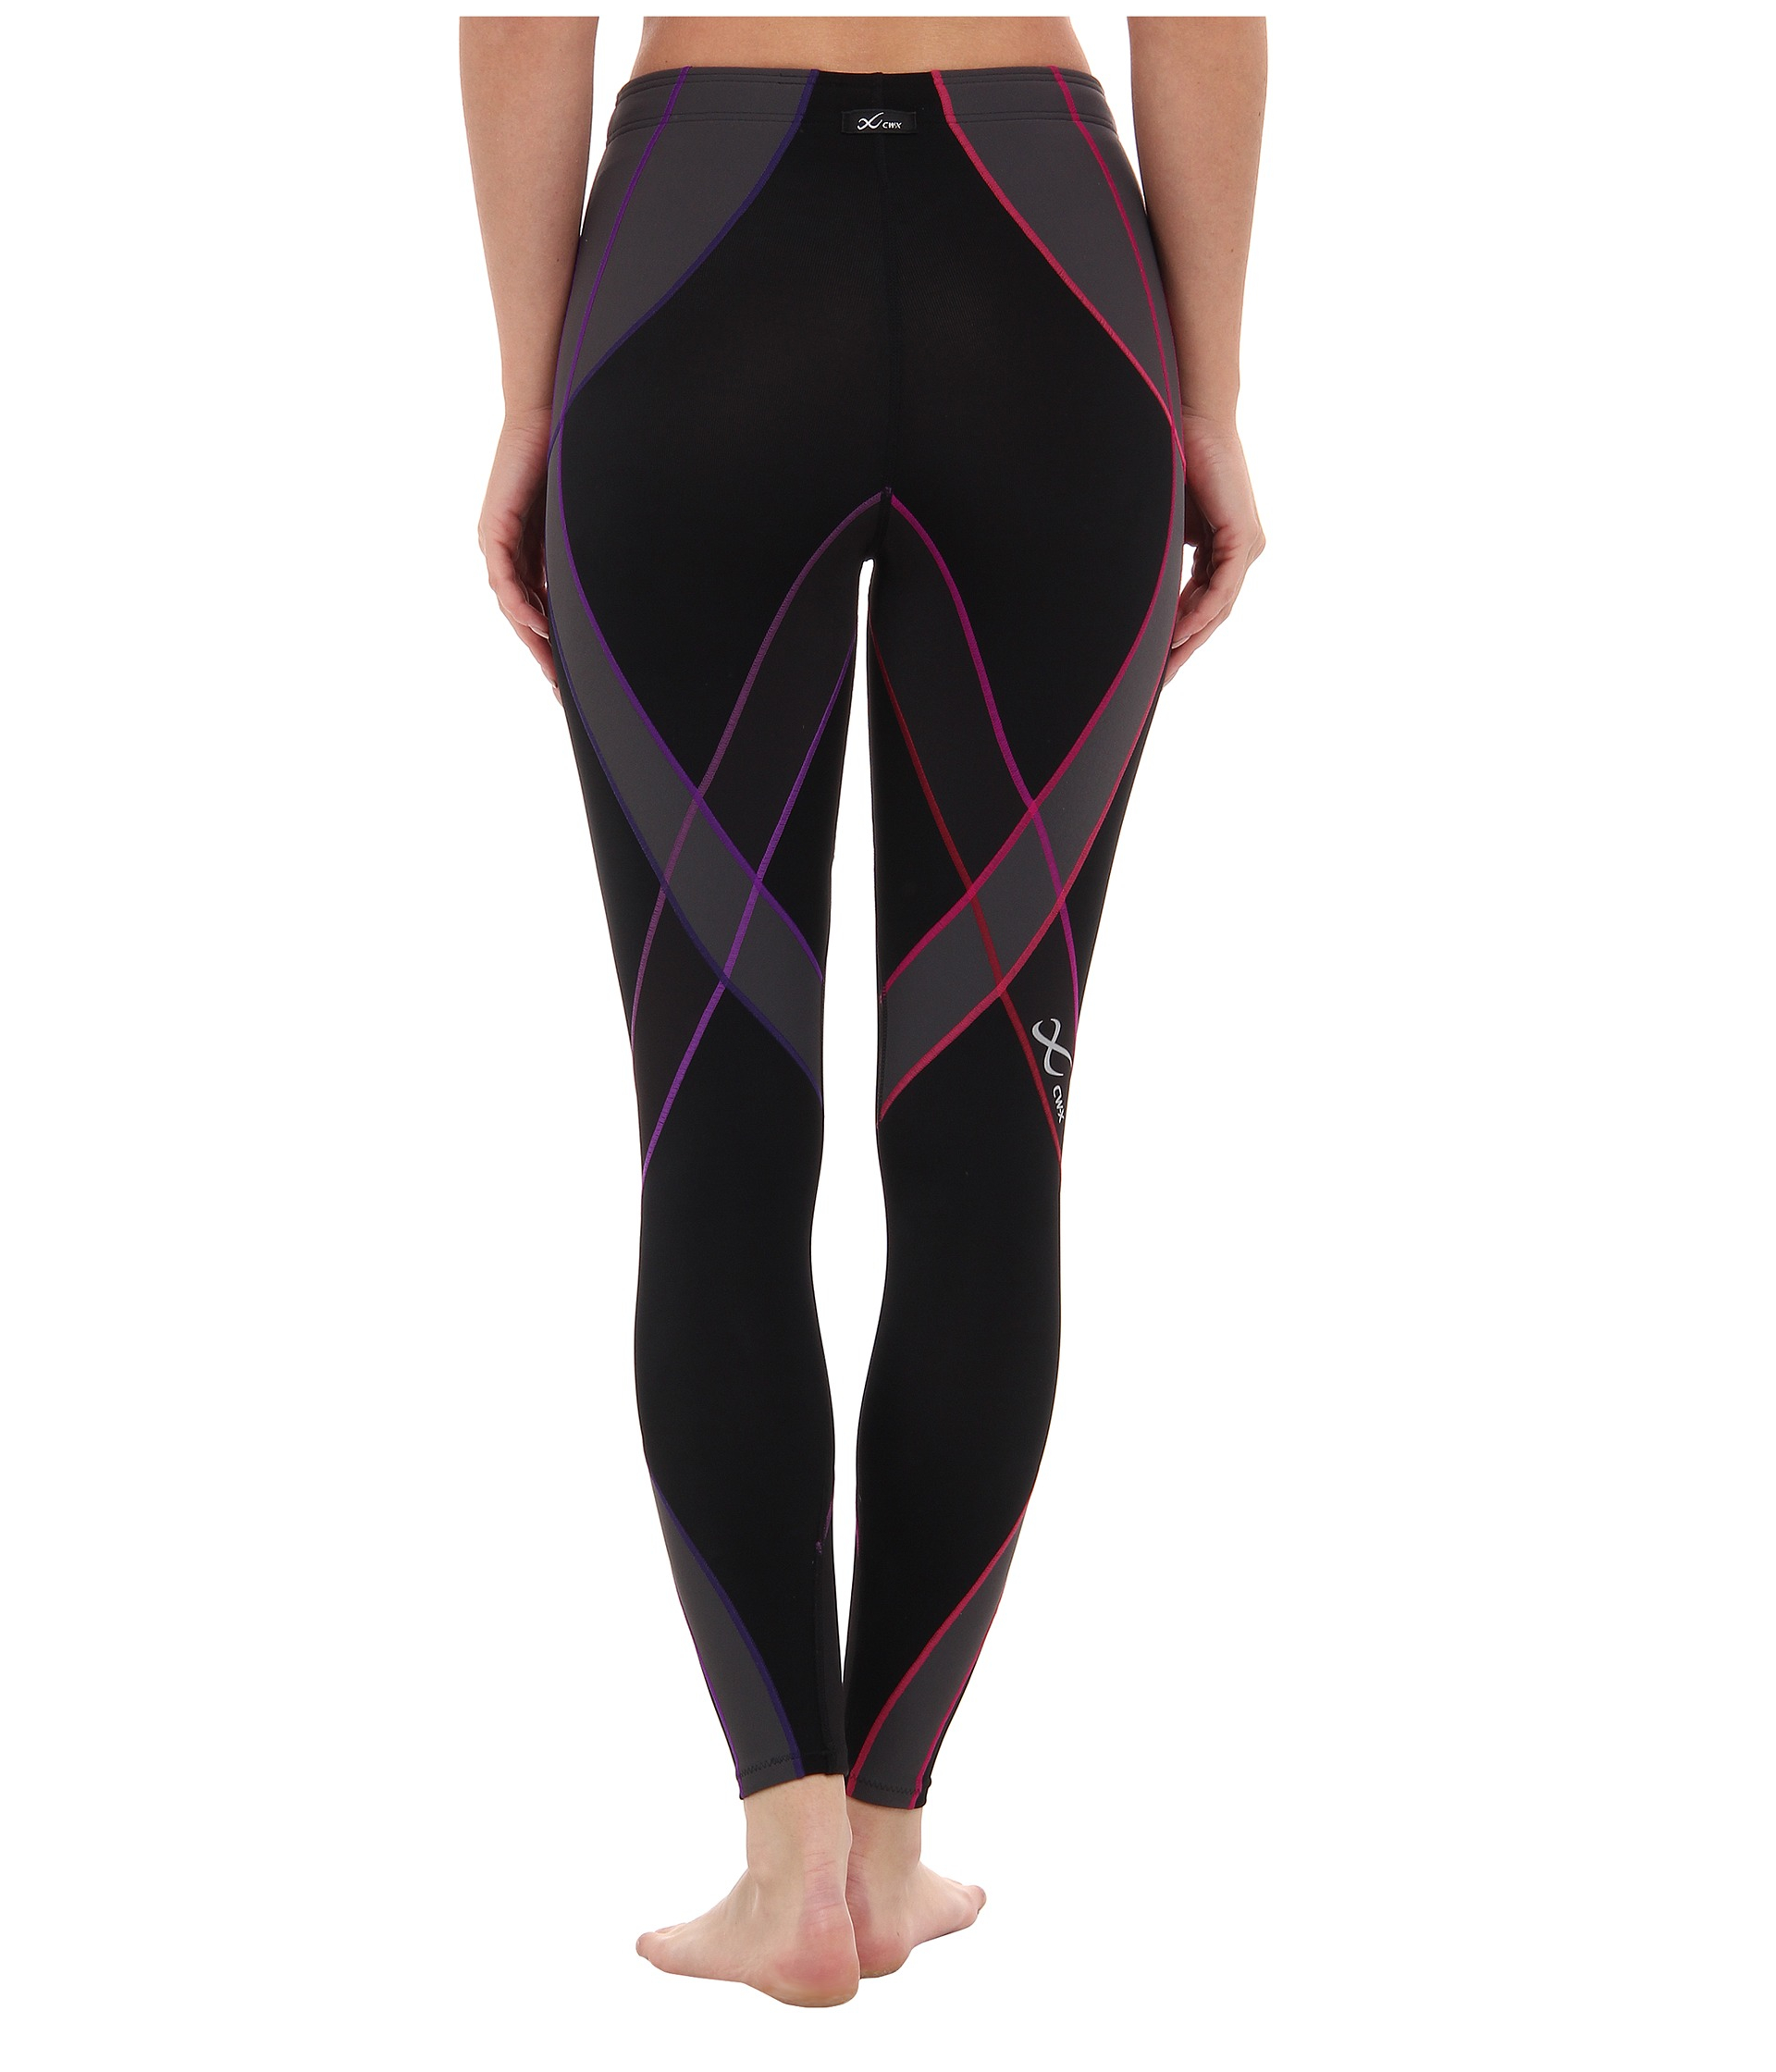 TROUSERS - Leggings CW-X Buy Cheap Prices New Style Cheap 100% Authentic Footlocker Online 5NkoPEkm2